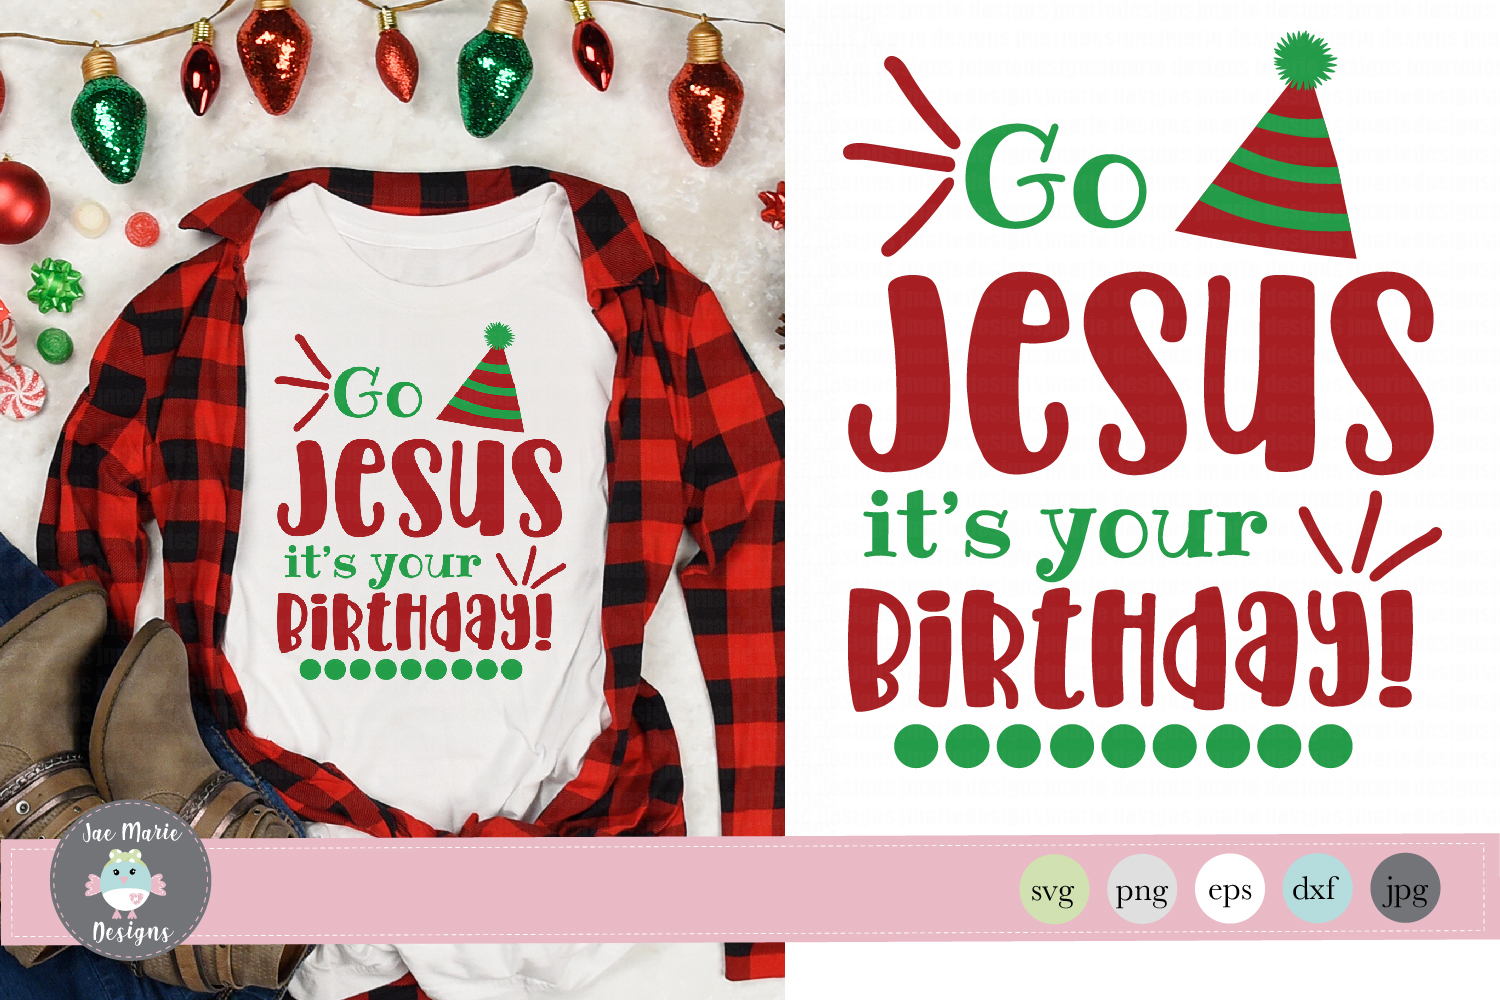 Download Free Go Jesus Its Your Birthday Christmas Graphic By Thejaemarie for Cricut Explore, Silhouette and other cutting machines.